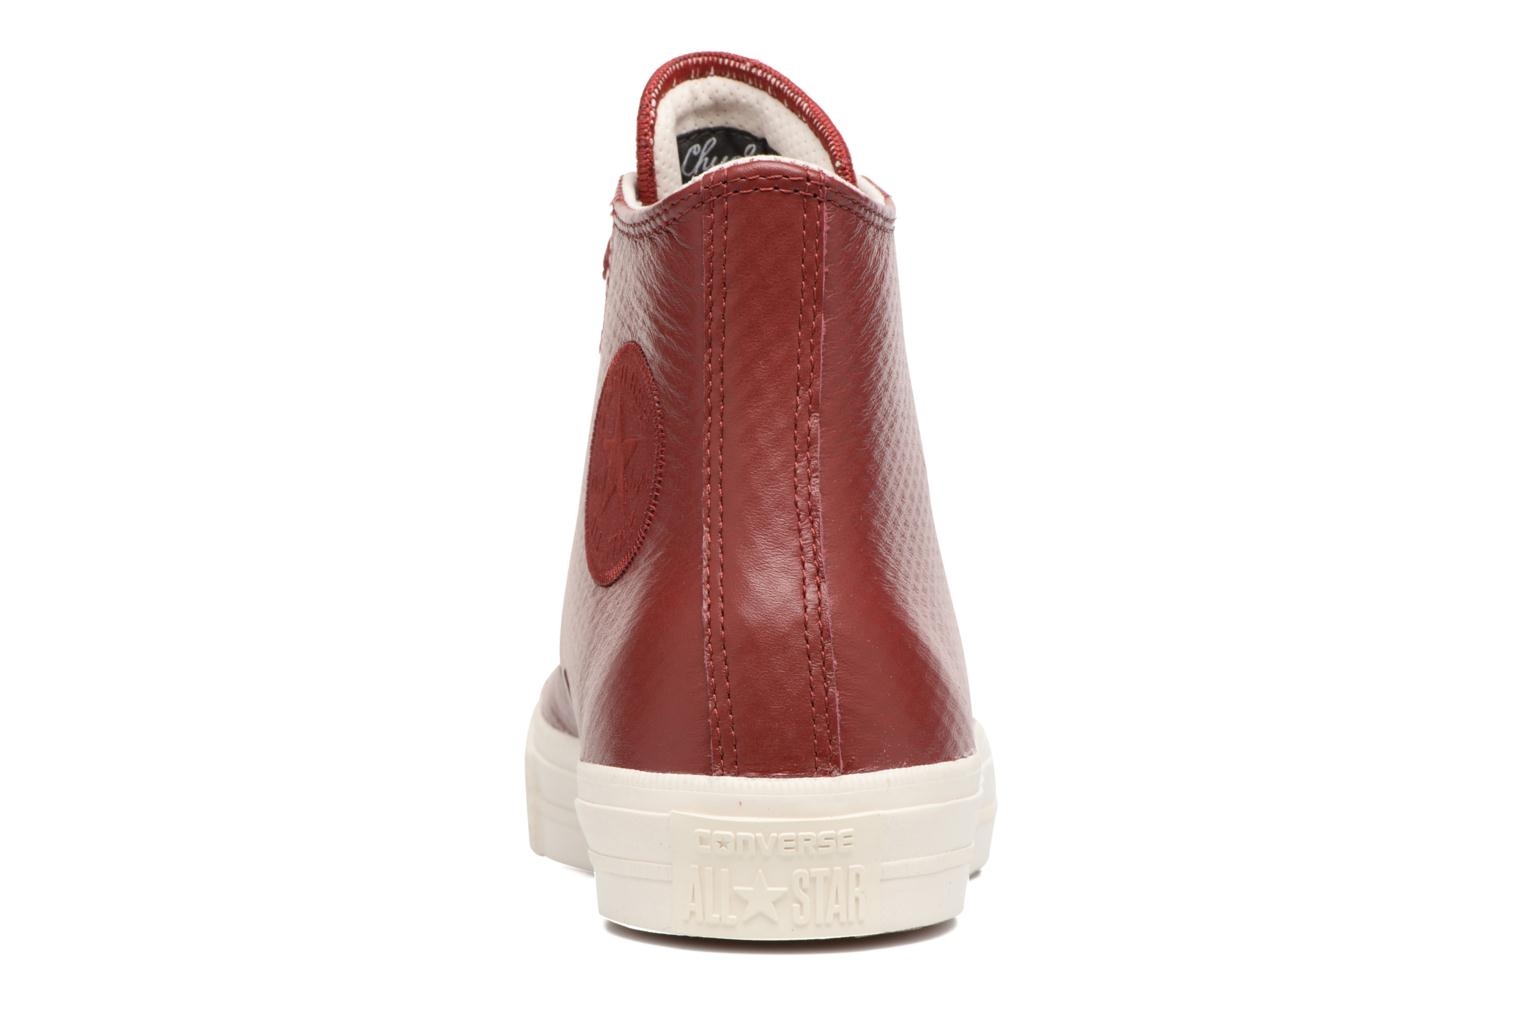 Baskets Converse Chuck Taylor All Star II Mesh-Backed Leather Hi M Bordeaux vue droite